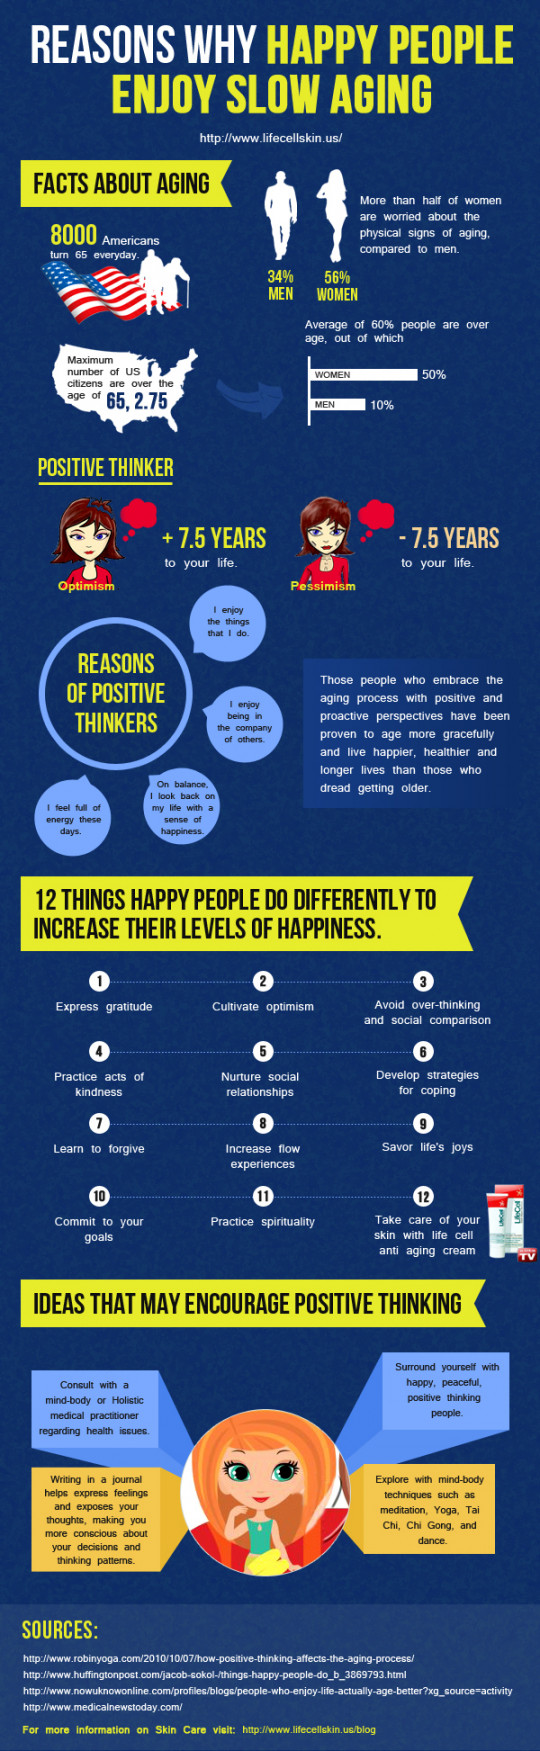 Reasons Why Happy People Enjoy Slow Aging